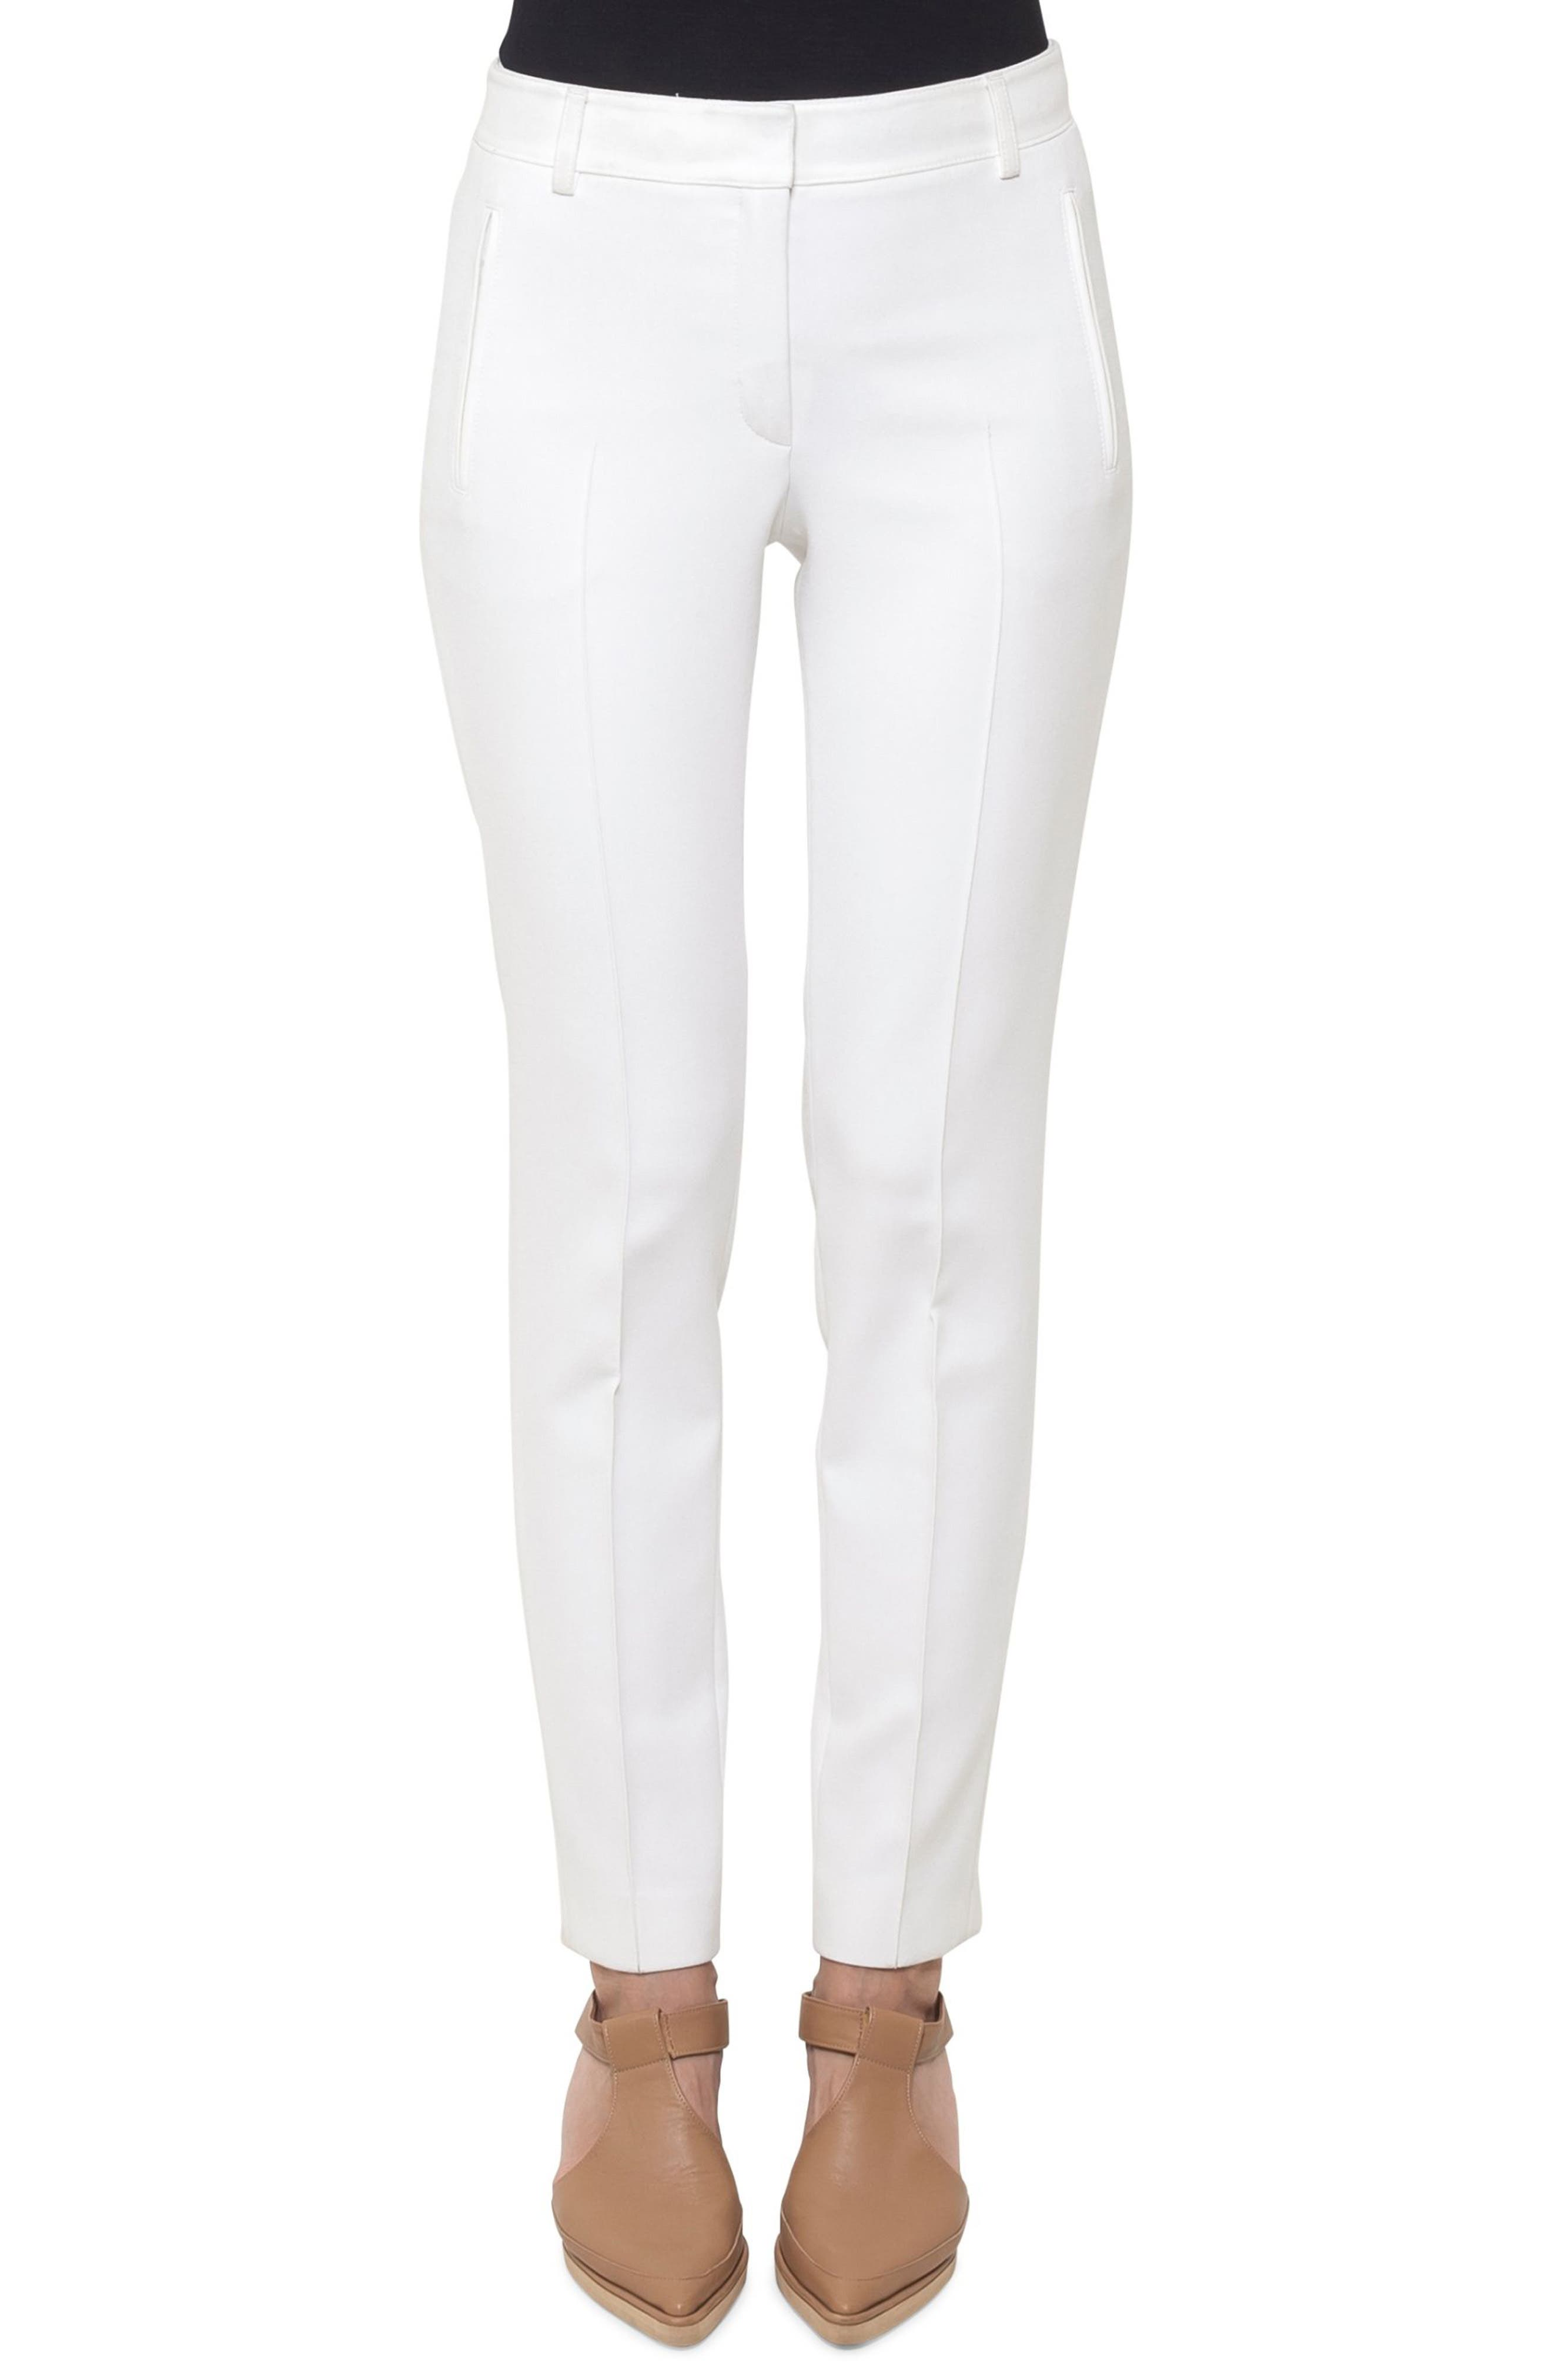 Fabia Pants,                             Main thumbnail 1, color,                             CREAM